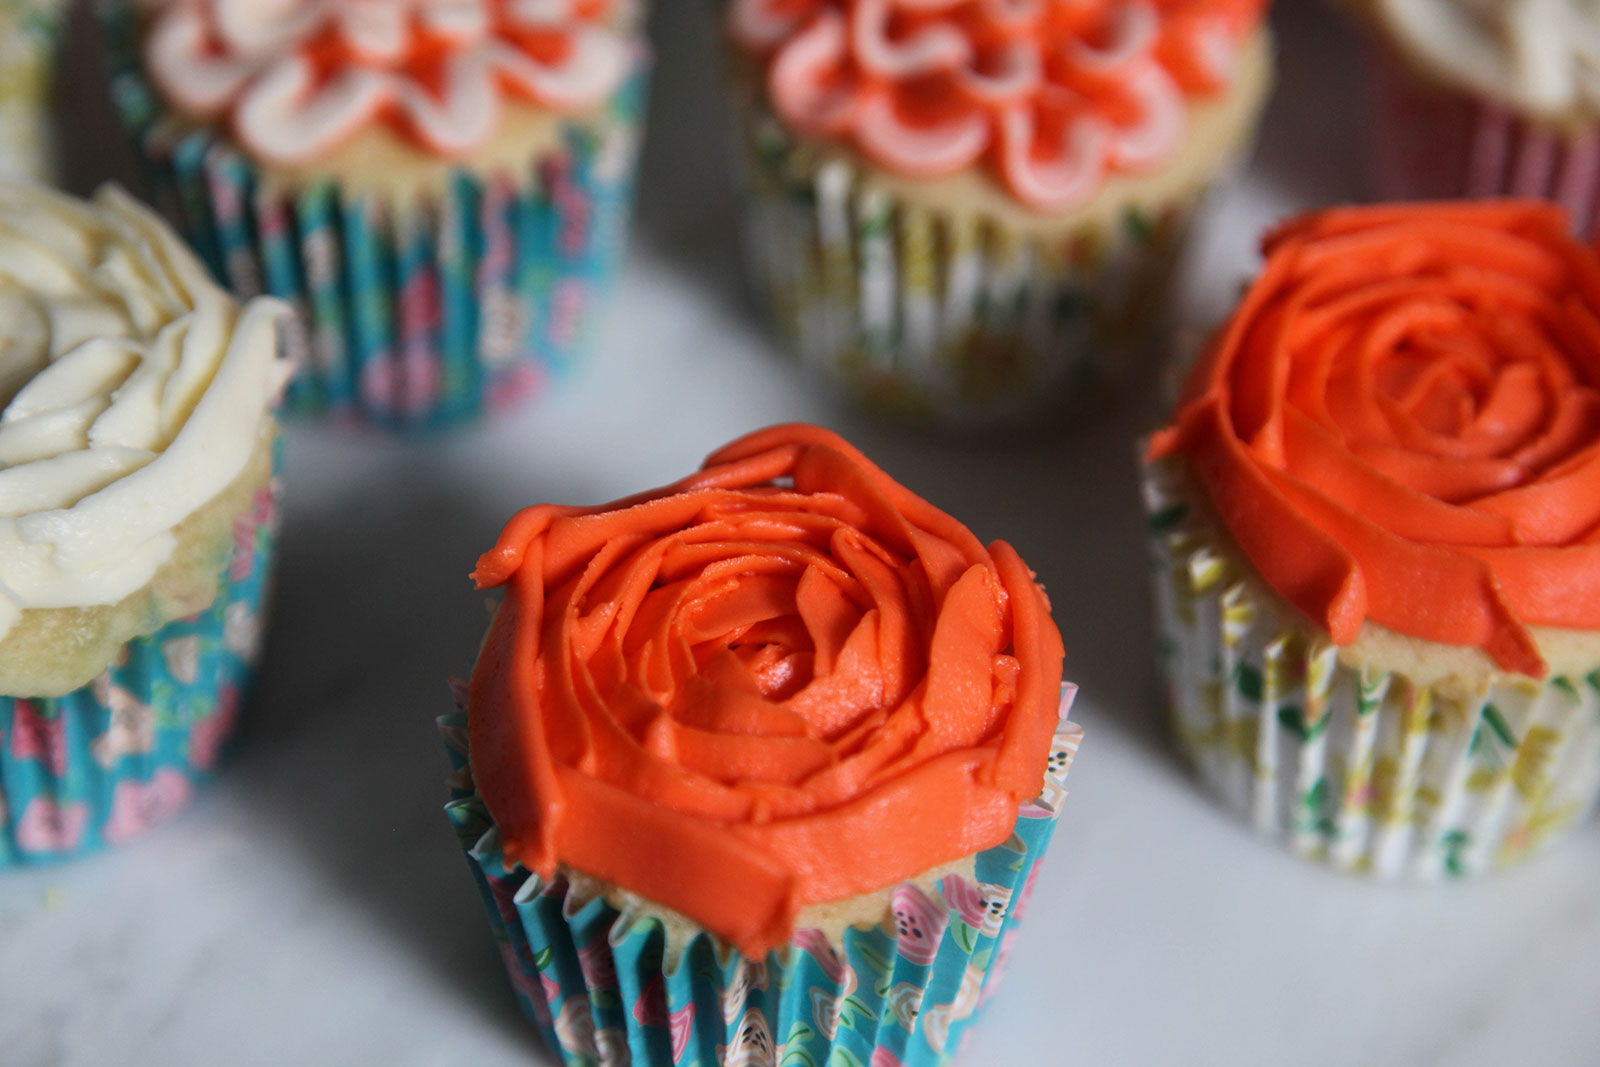 moist fluffy cupcakes with deep peach rosette decoration